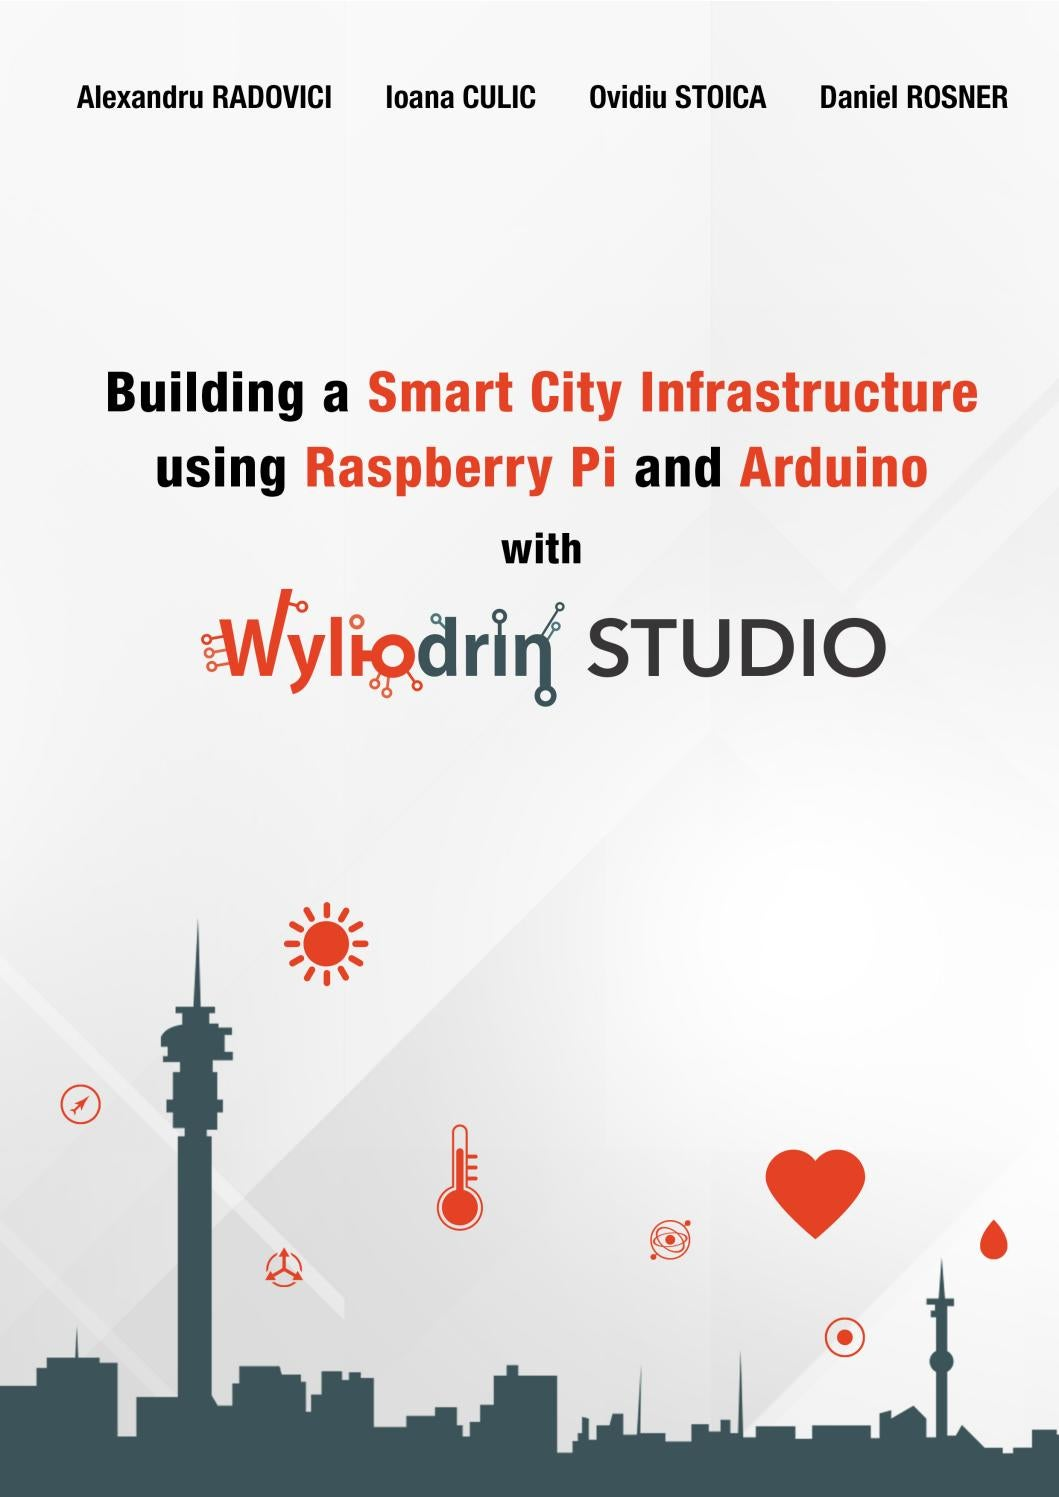 Building A Smart City Infrastructure Using Raspberry Pi And Arduino Wiringpi Make Not Found With Wyliodrin Studio By Issuu